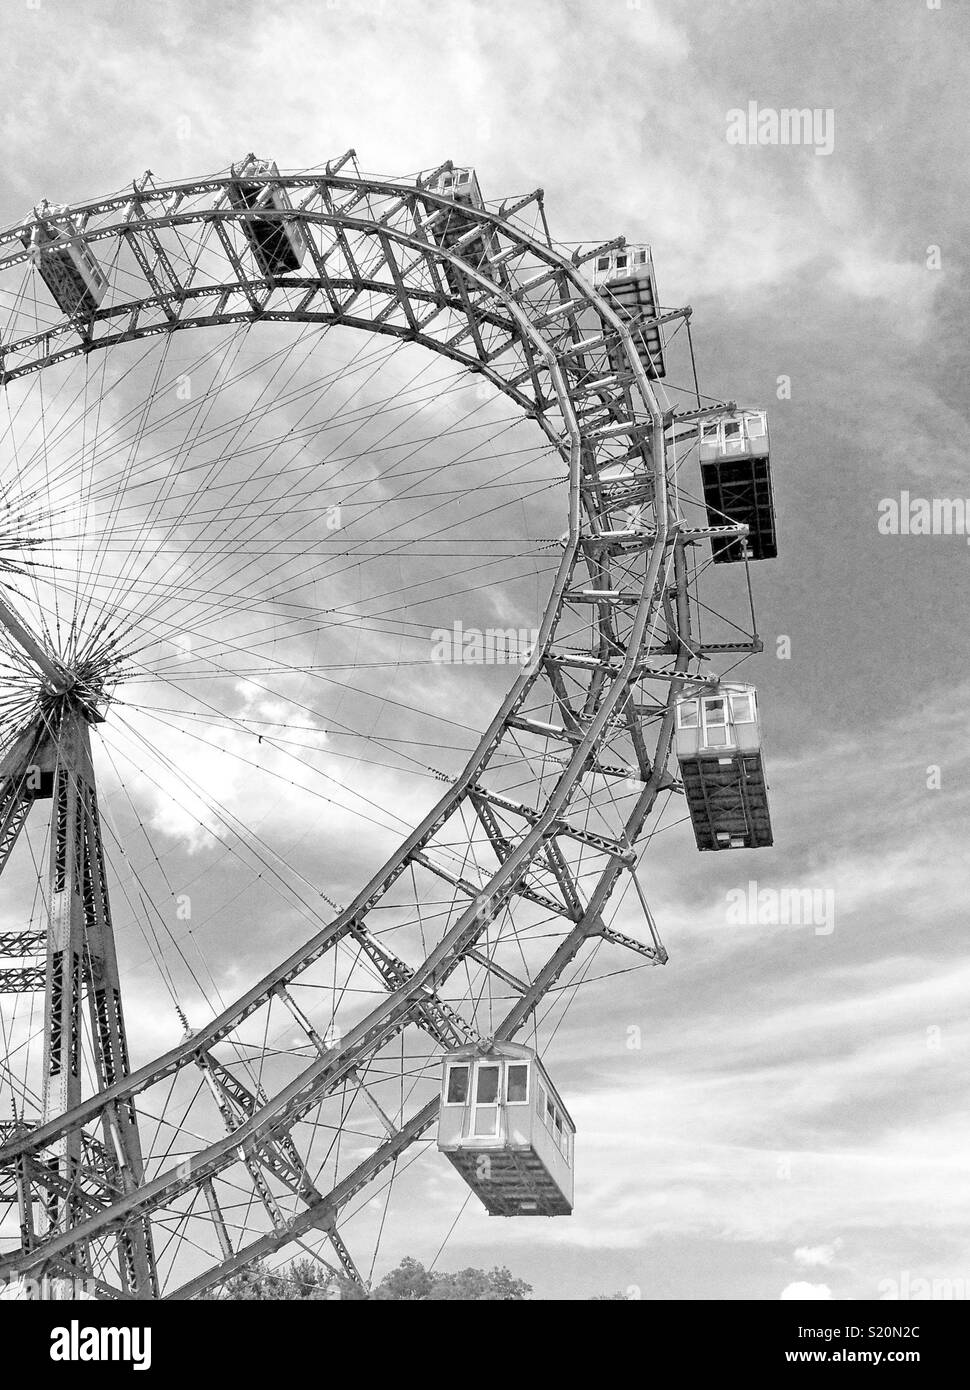 The Riesenrad Ferris wheel is an iconic ride at the Vienna amusement park - Stock Image